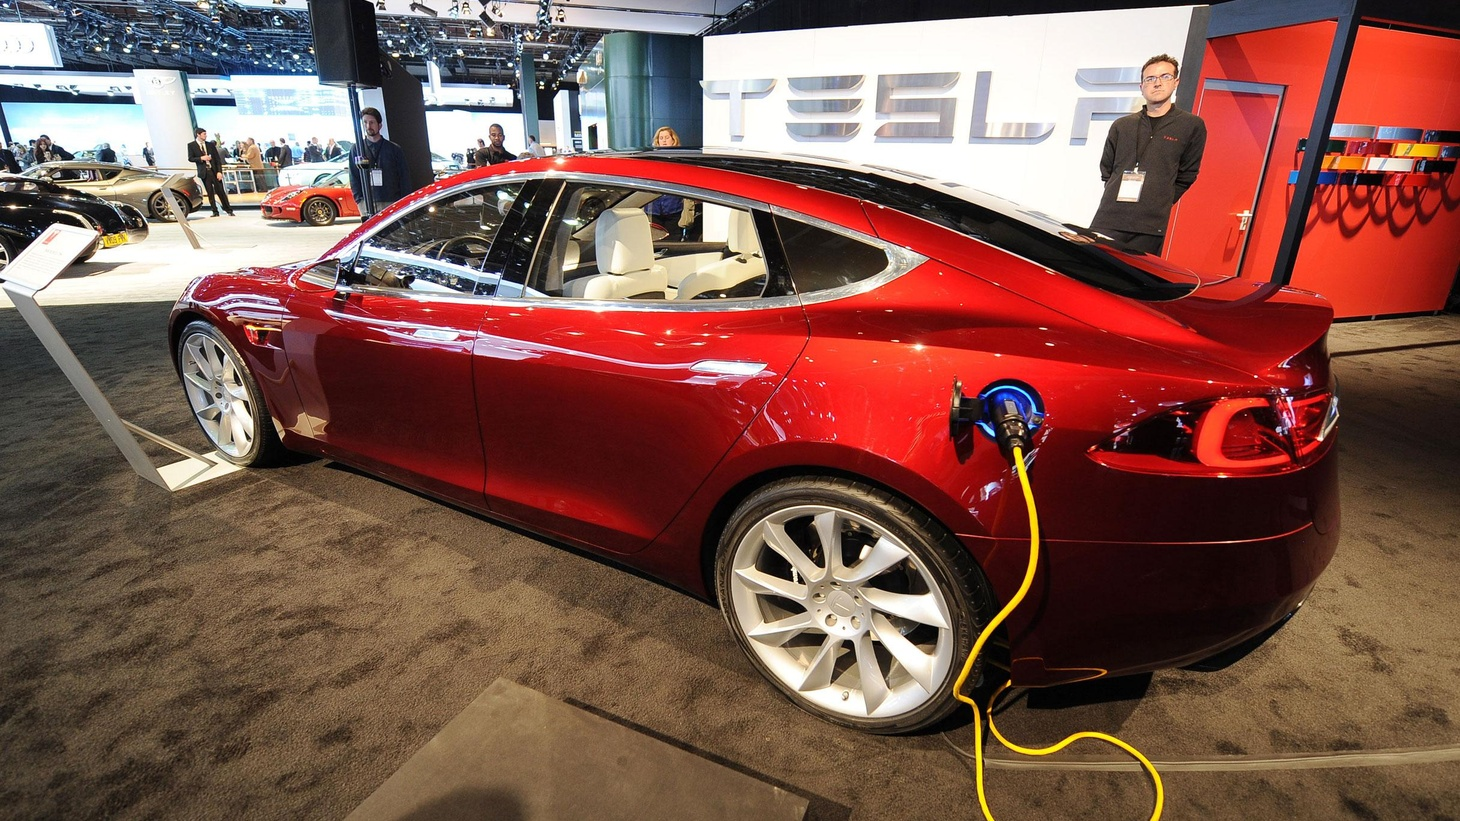 In the age of the Gulf oil spill and global warming, is the electric car a game-changer or an old technology not much improved for 100 years? We look at Tesla Motors, which got a warm welcome from investors when it went public. Also, Mayor Villaraigosa's free-ticket scandal. On our rebroadcast of To the Point, does the recovering economy require more federal stimulus or greater austerity?